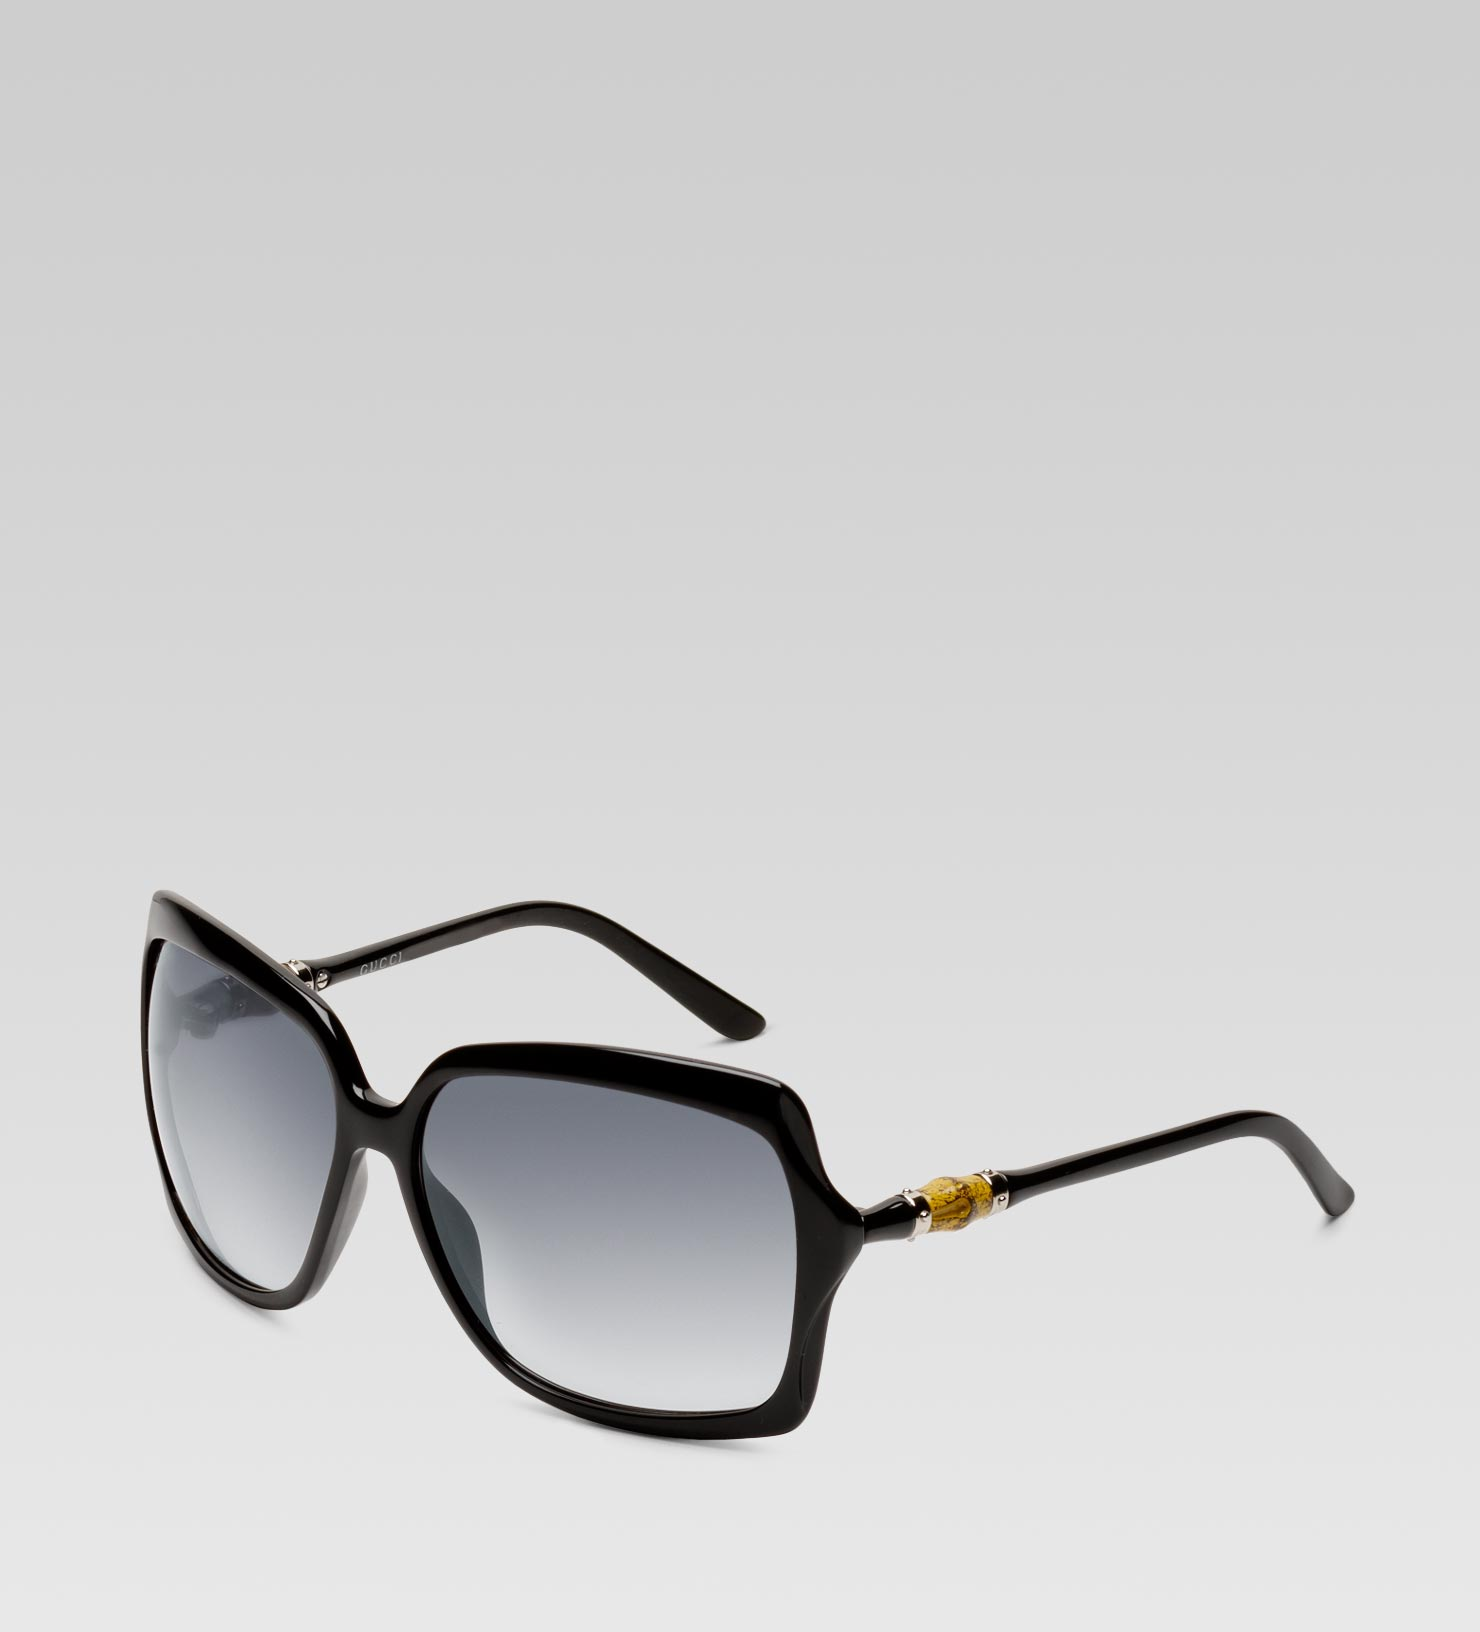 d8151e92165 Gucci Medium Square Frame Sunglasses with Bamboo Detail On Temple in ...